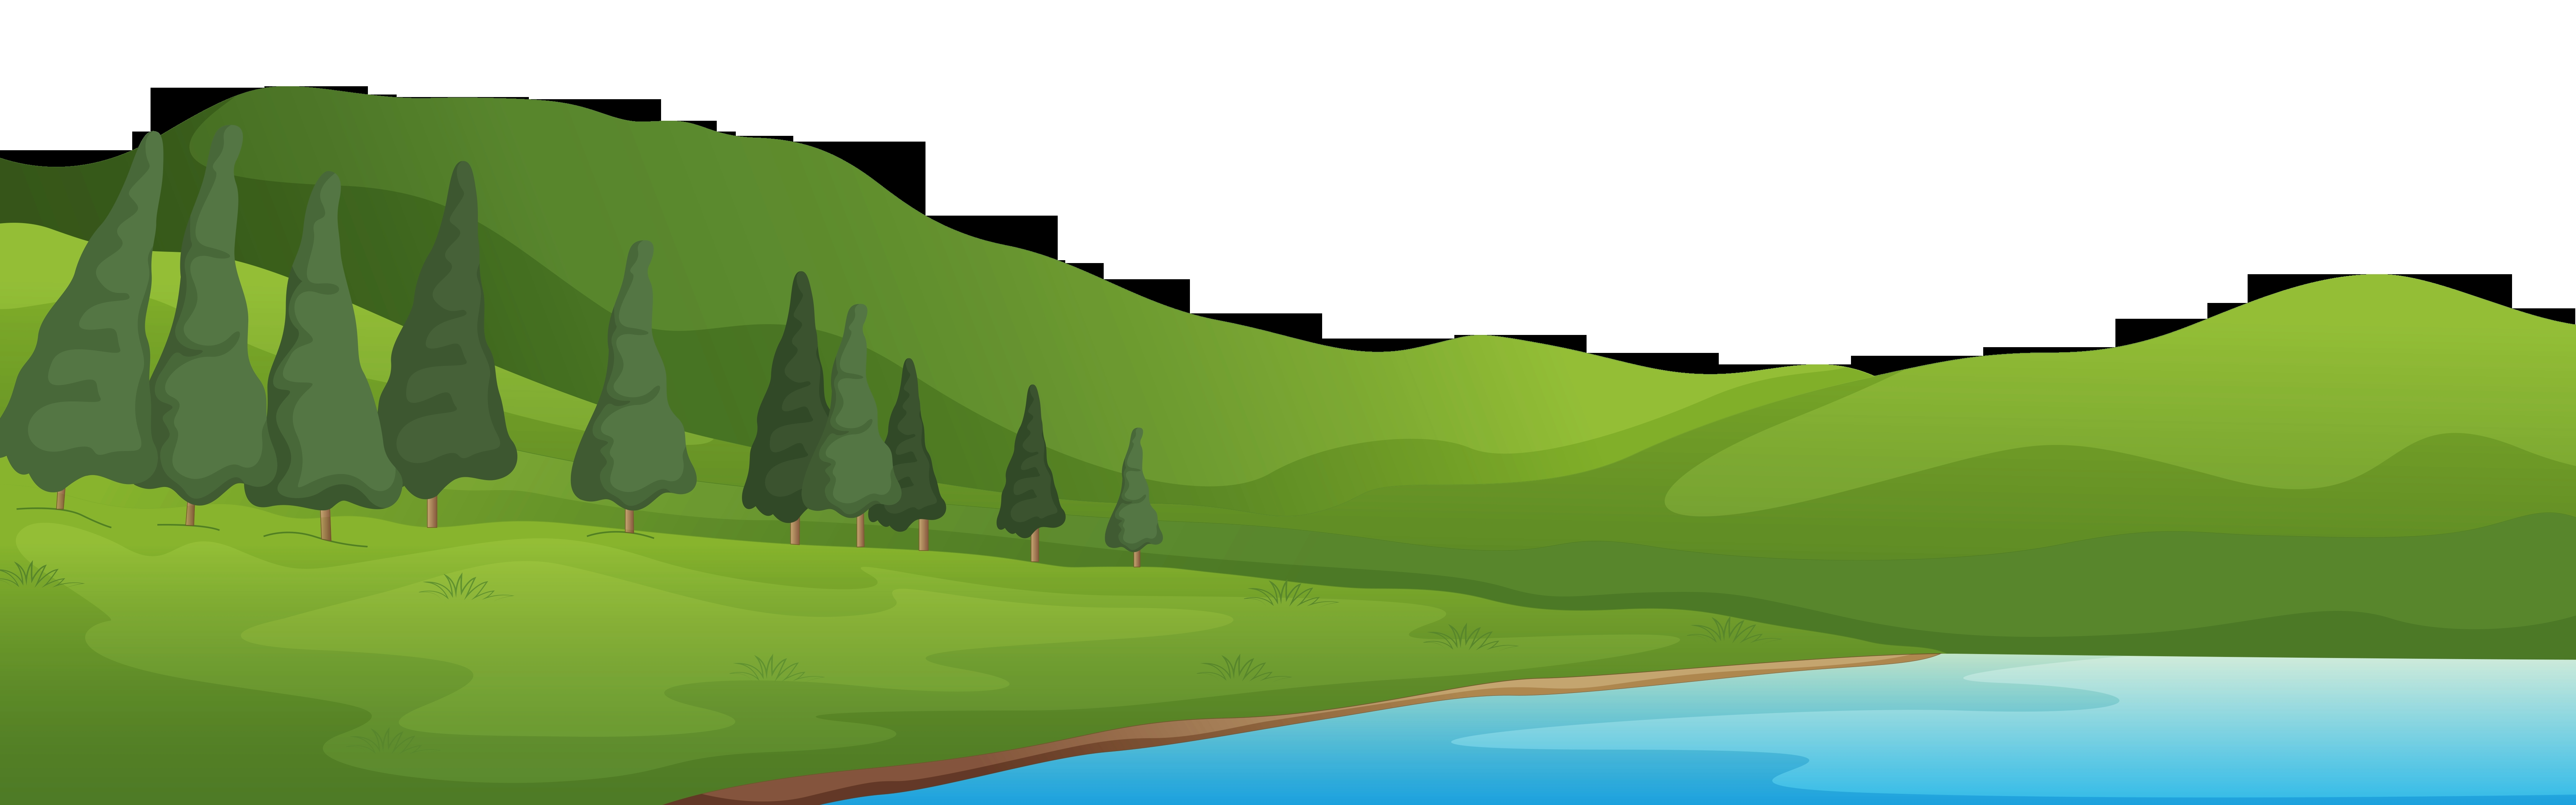 Mountain clipart view. Best of design digital